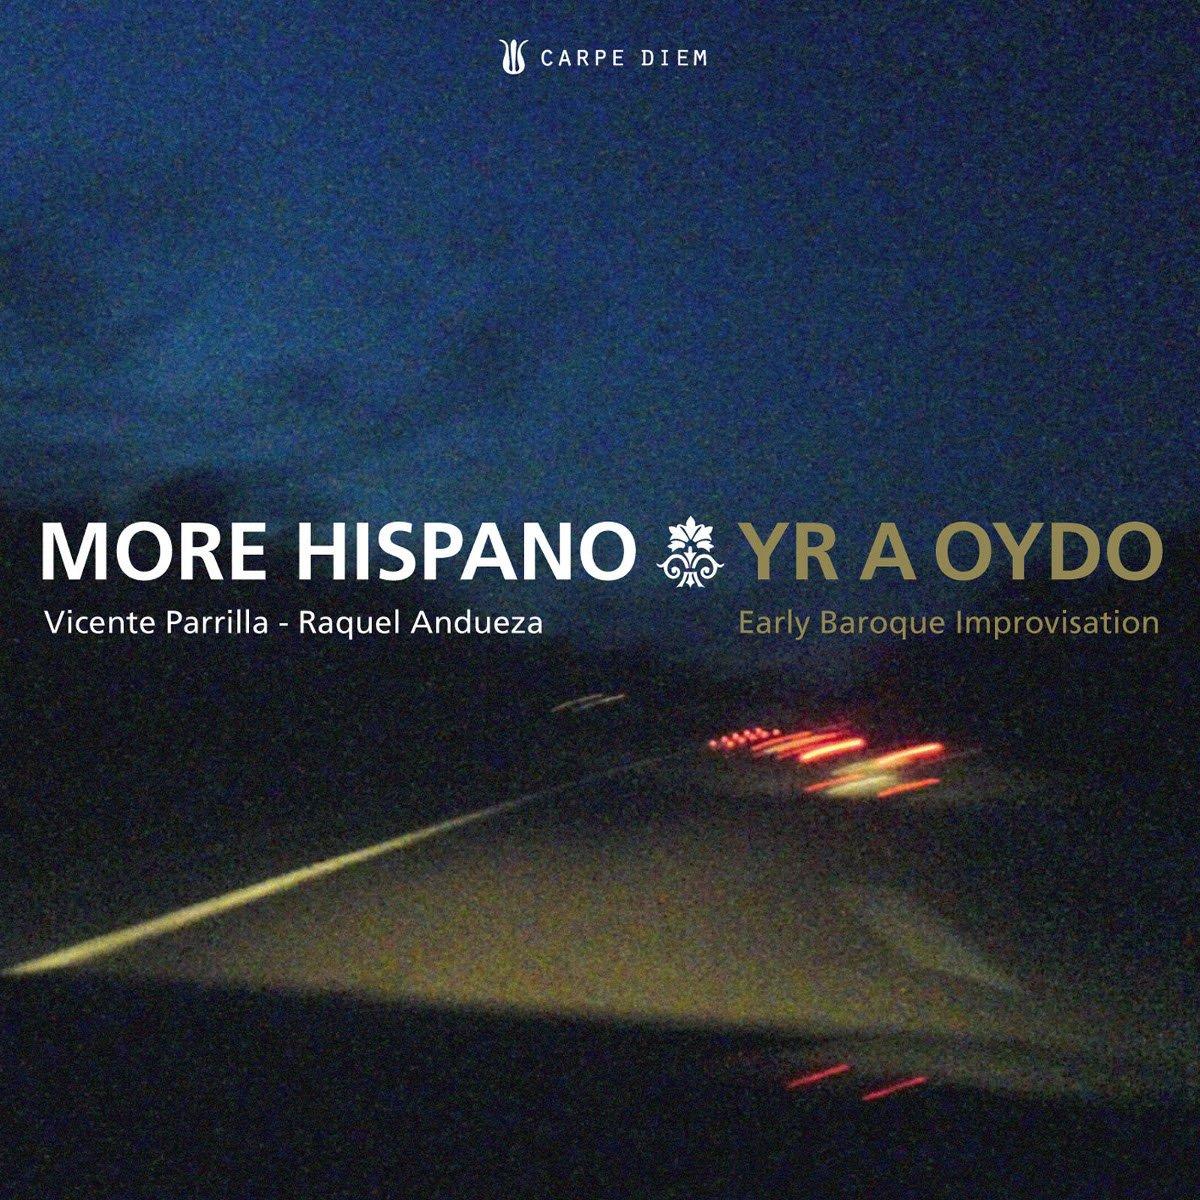 More Hispano: Yr a Oydo